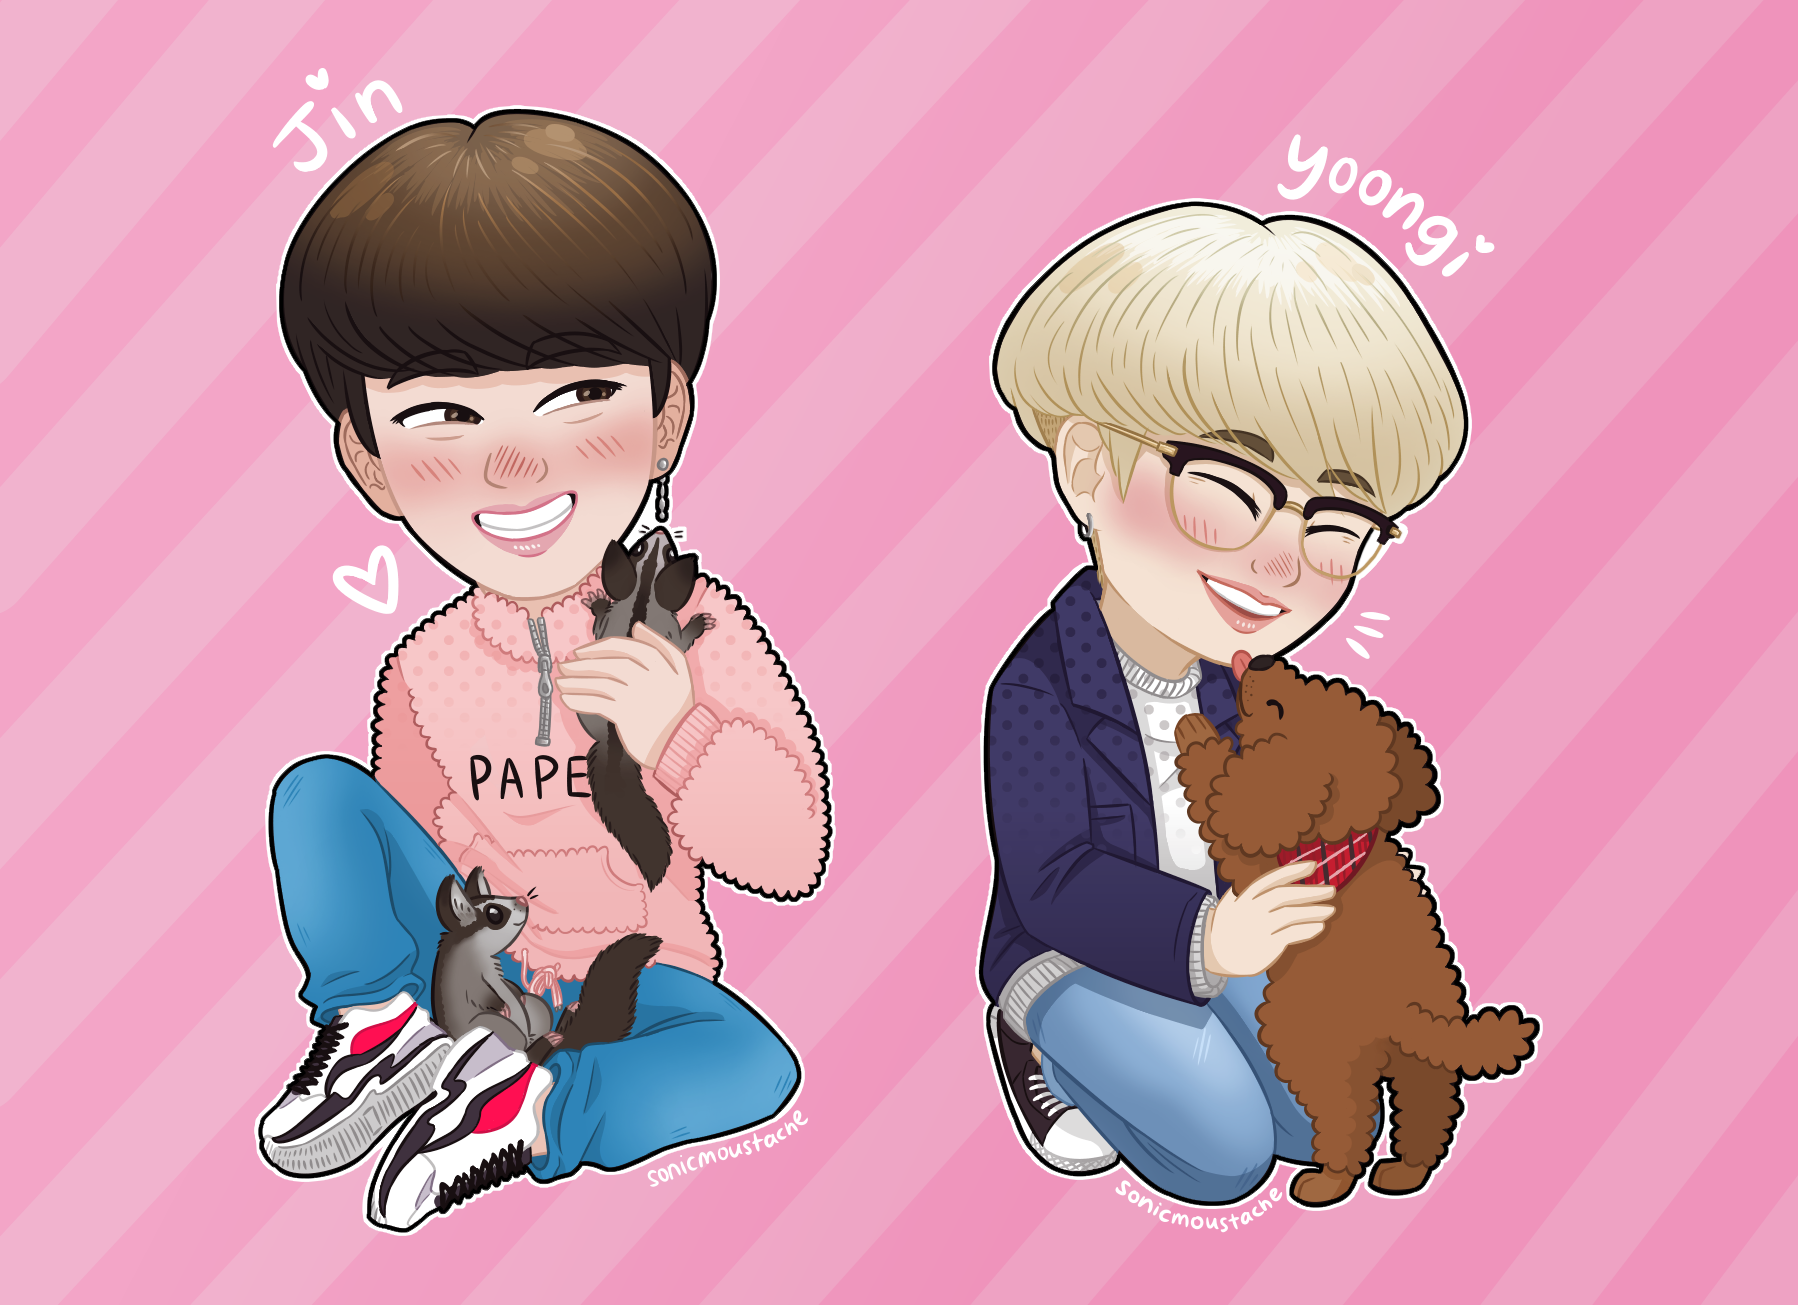 BTS Jin & Suga With Pets Charm sold by buff frogs anonymous